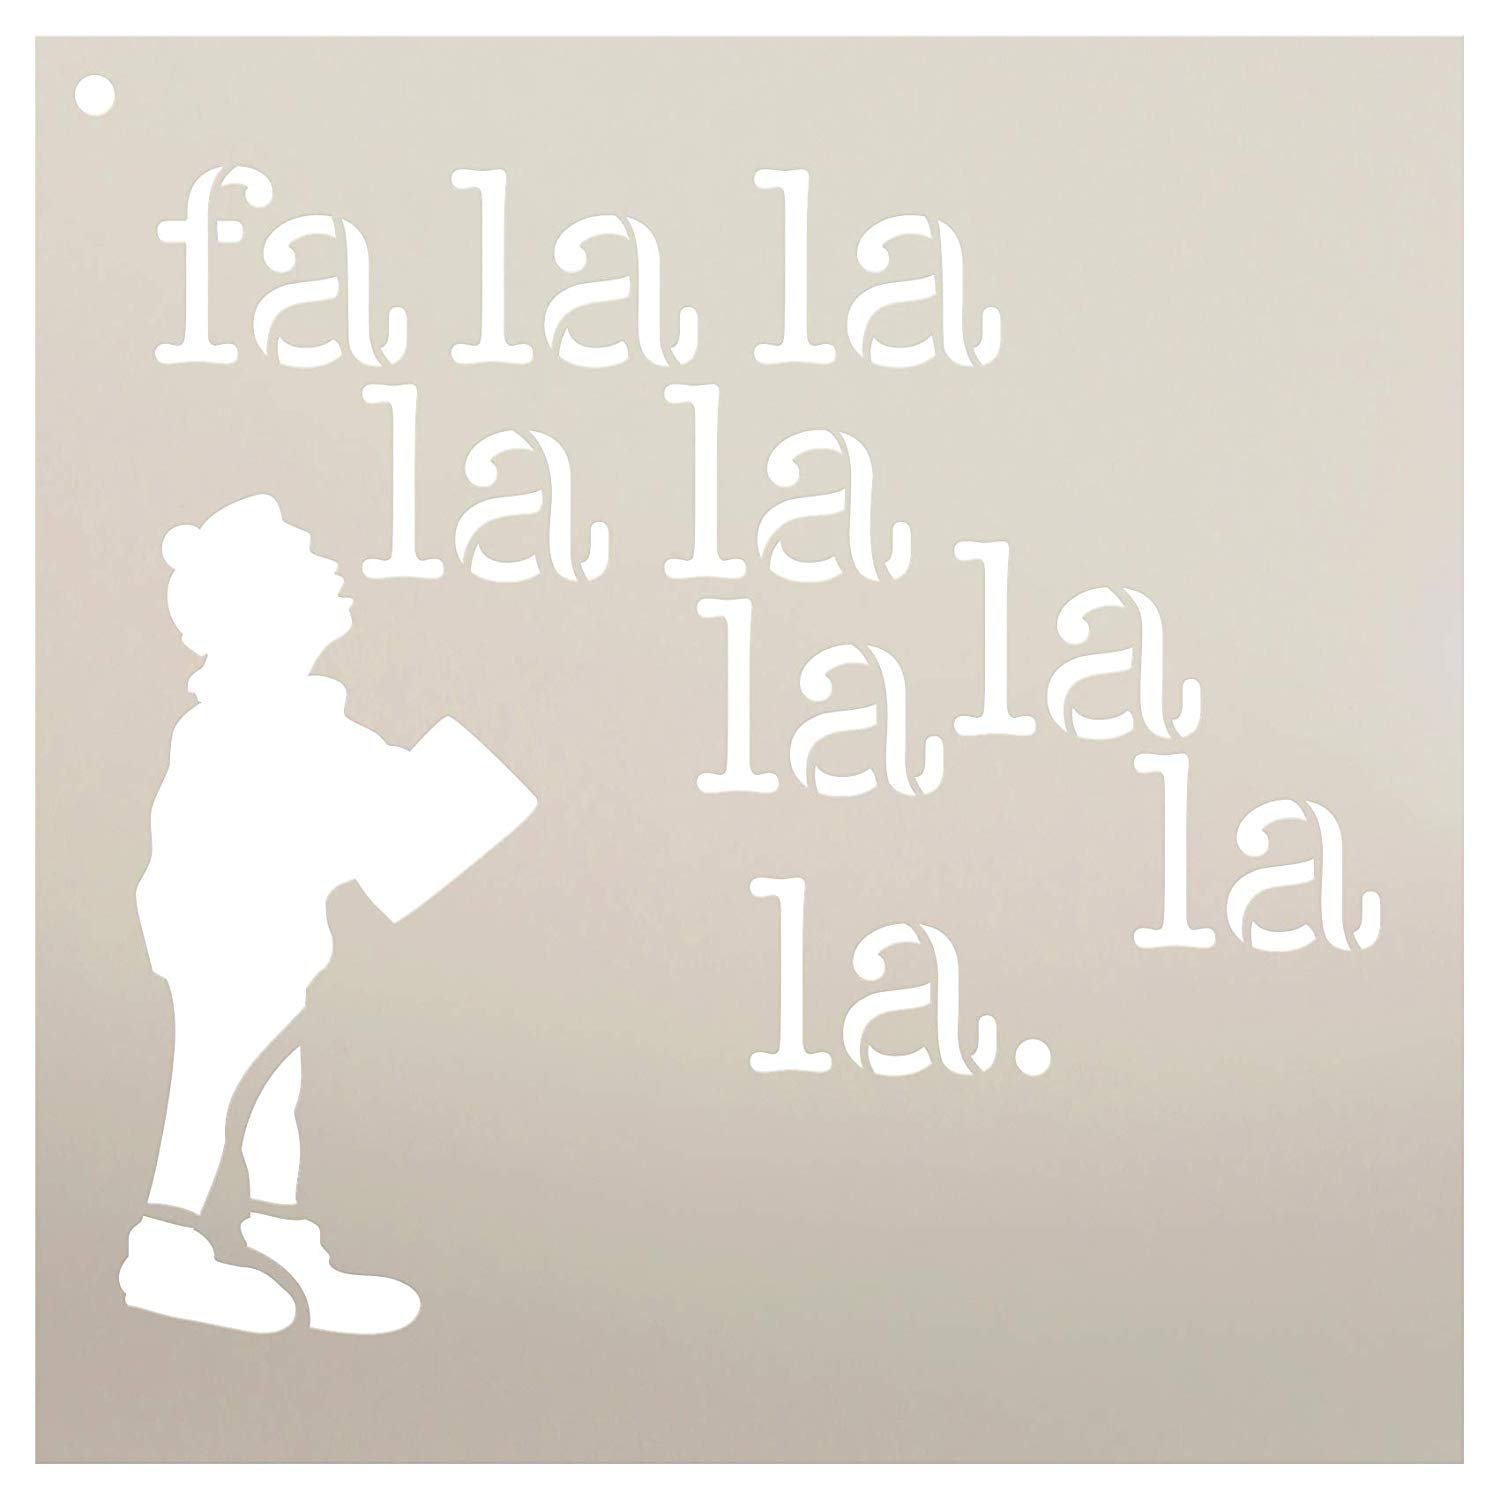 FA La La La with Caroler Stencil by StudioR12 | Reusable Mylar Template | Use to Paint Wood Signs - Pallets - Wall - Pillows - DIY Christmas Decor - Select Size